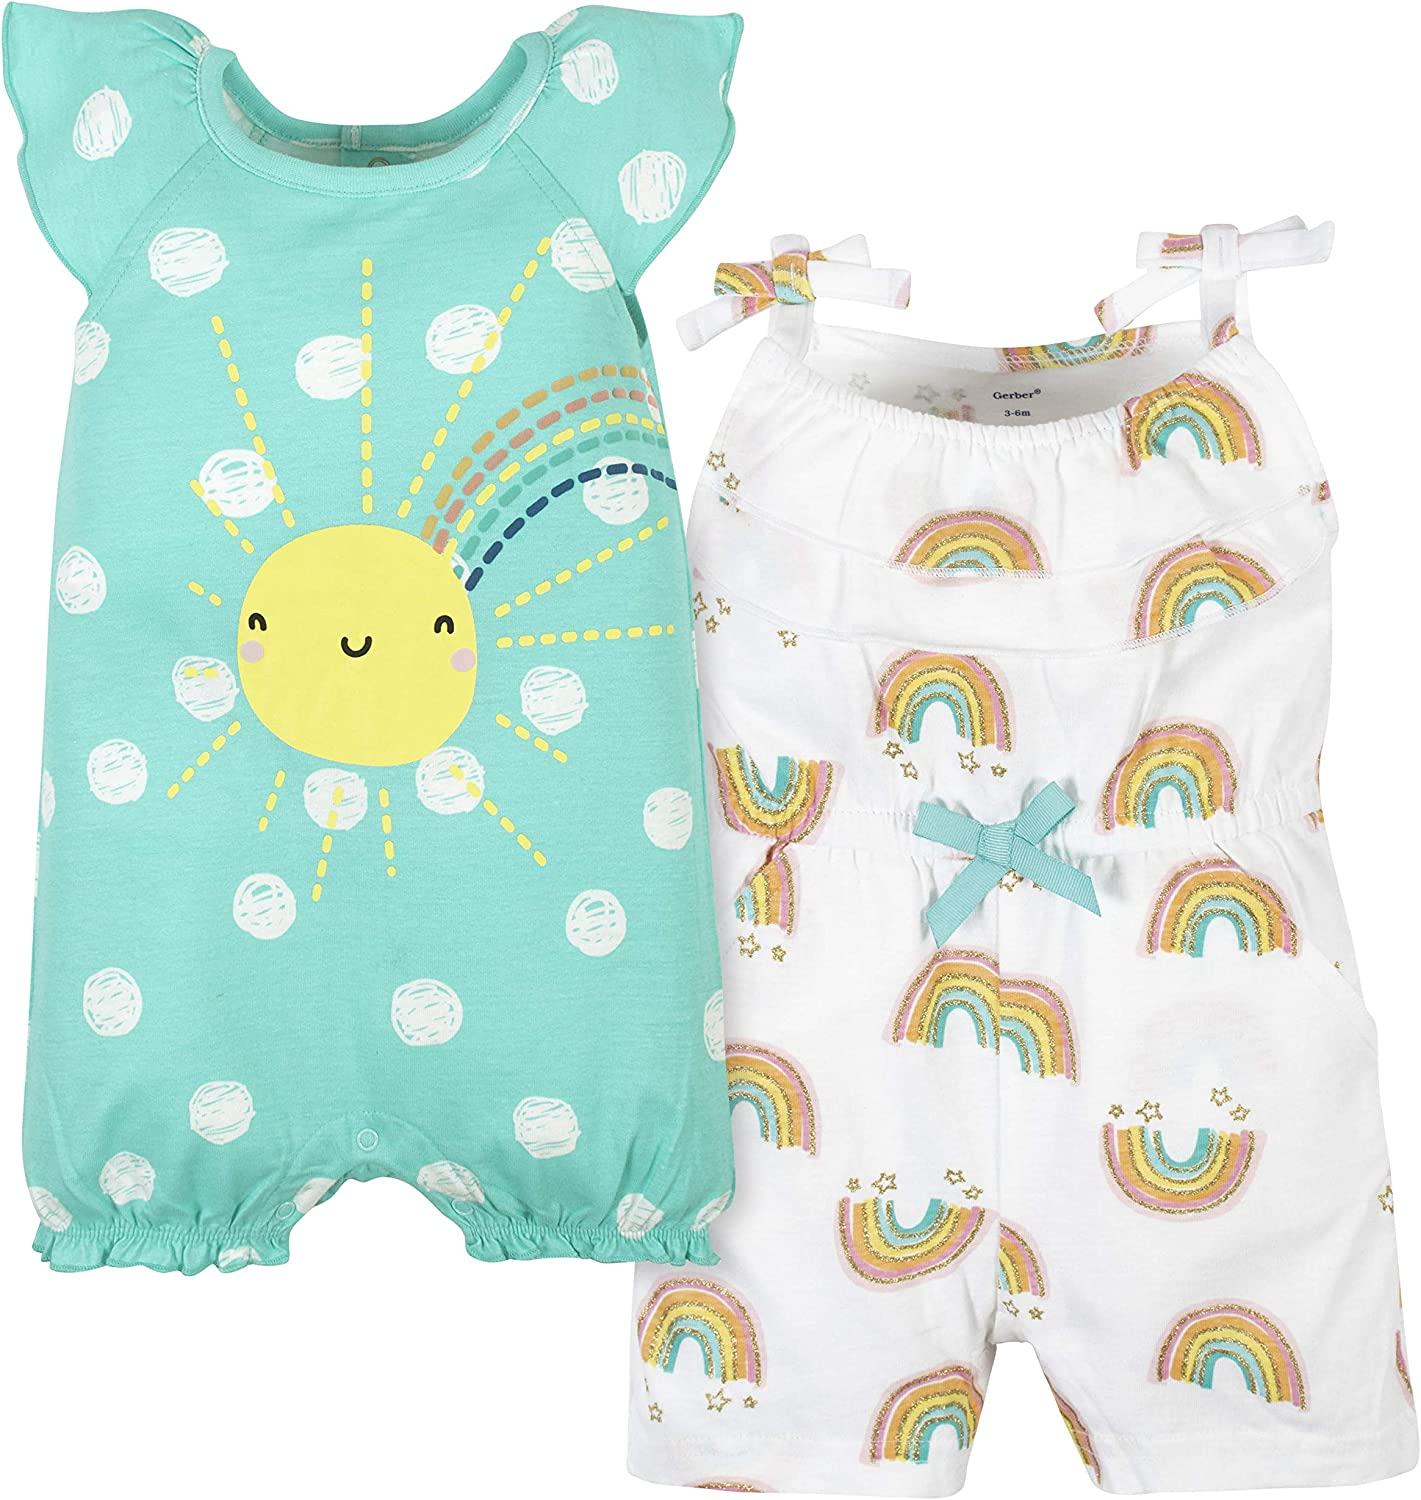 Gerber Baby Max 47% low-pricing OFF Girls' 2-Pack Rompers